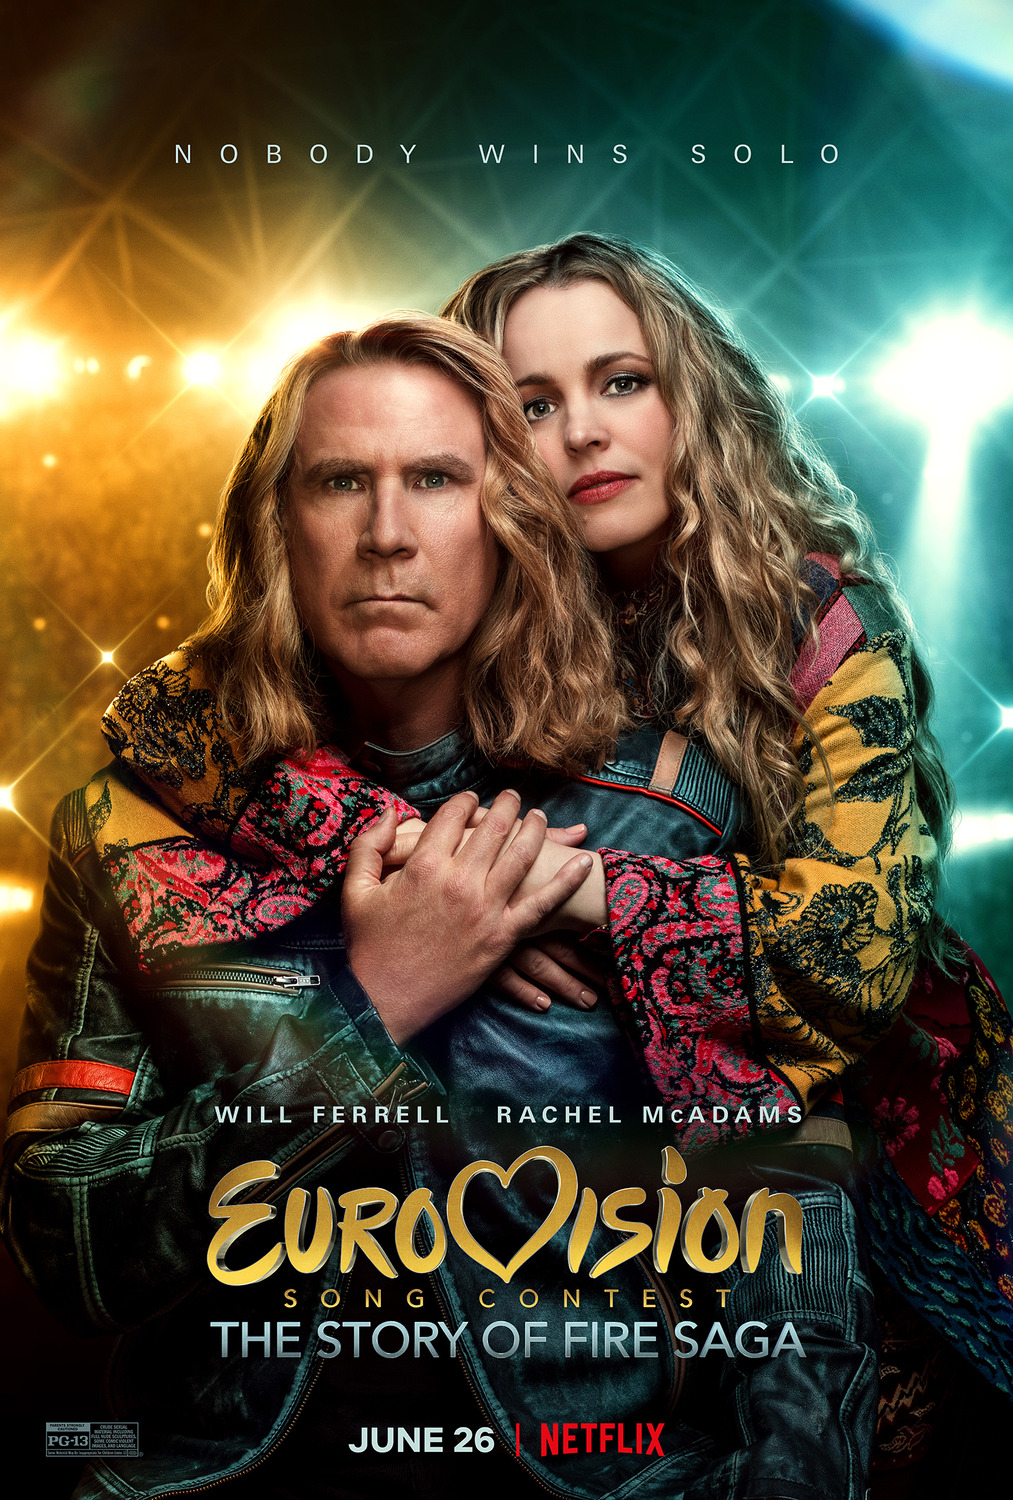 All about the Eurovision Movie